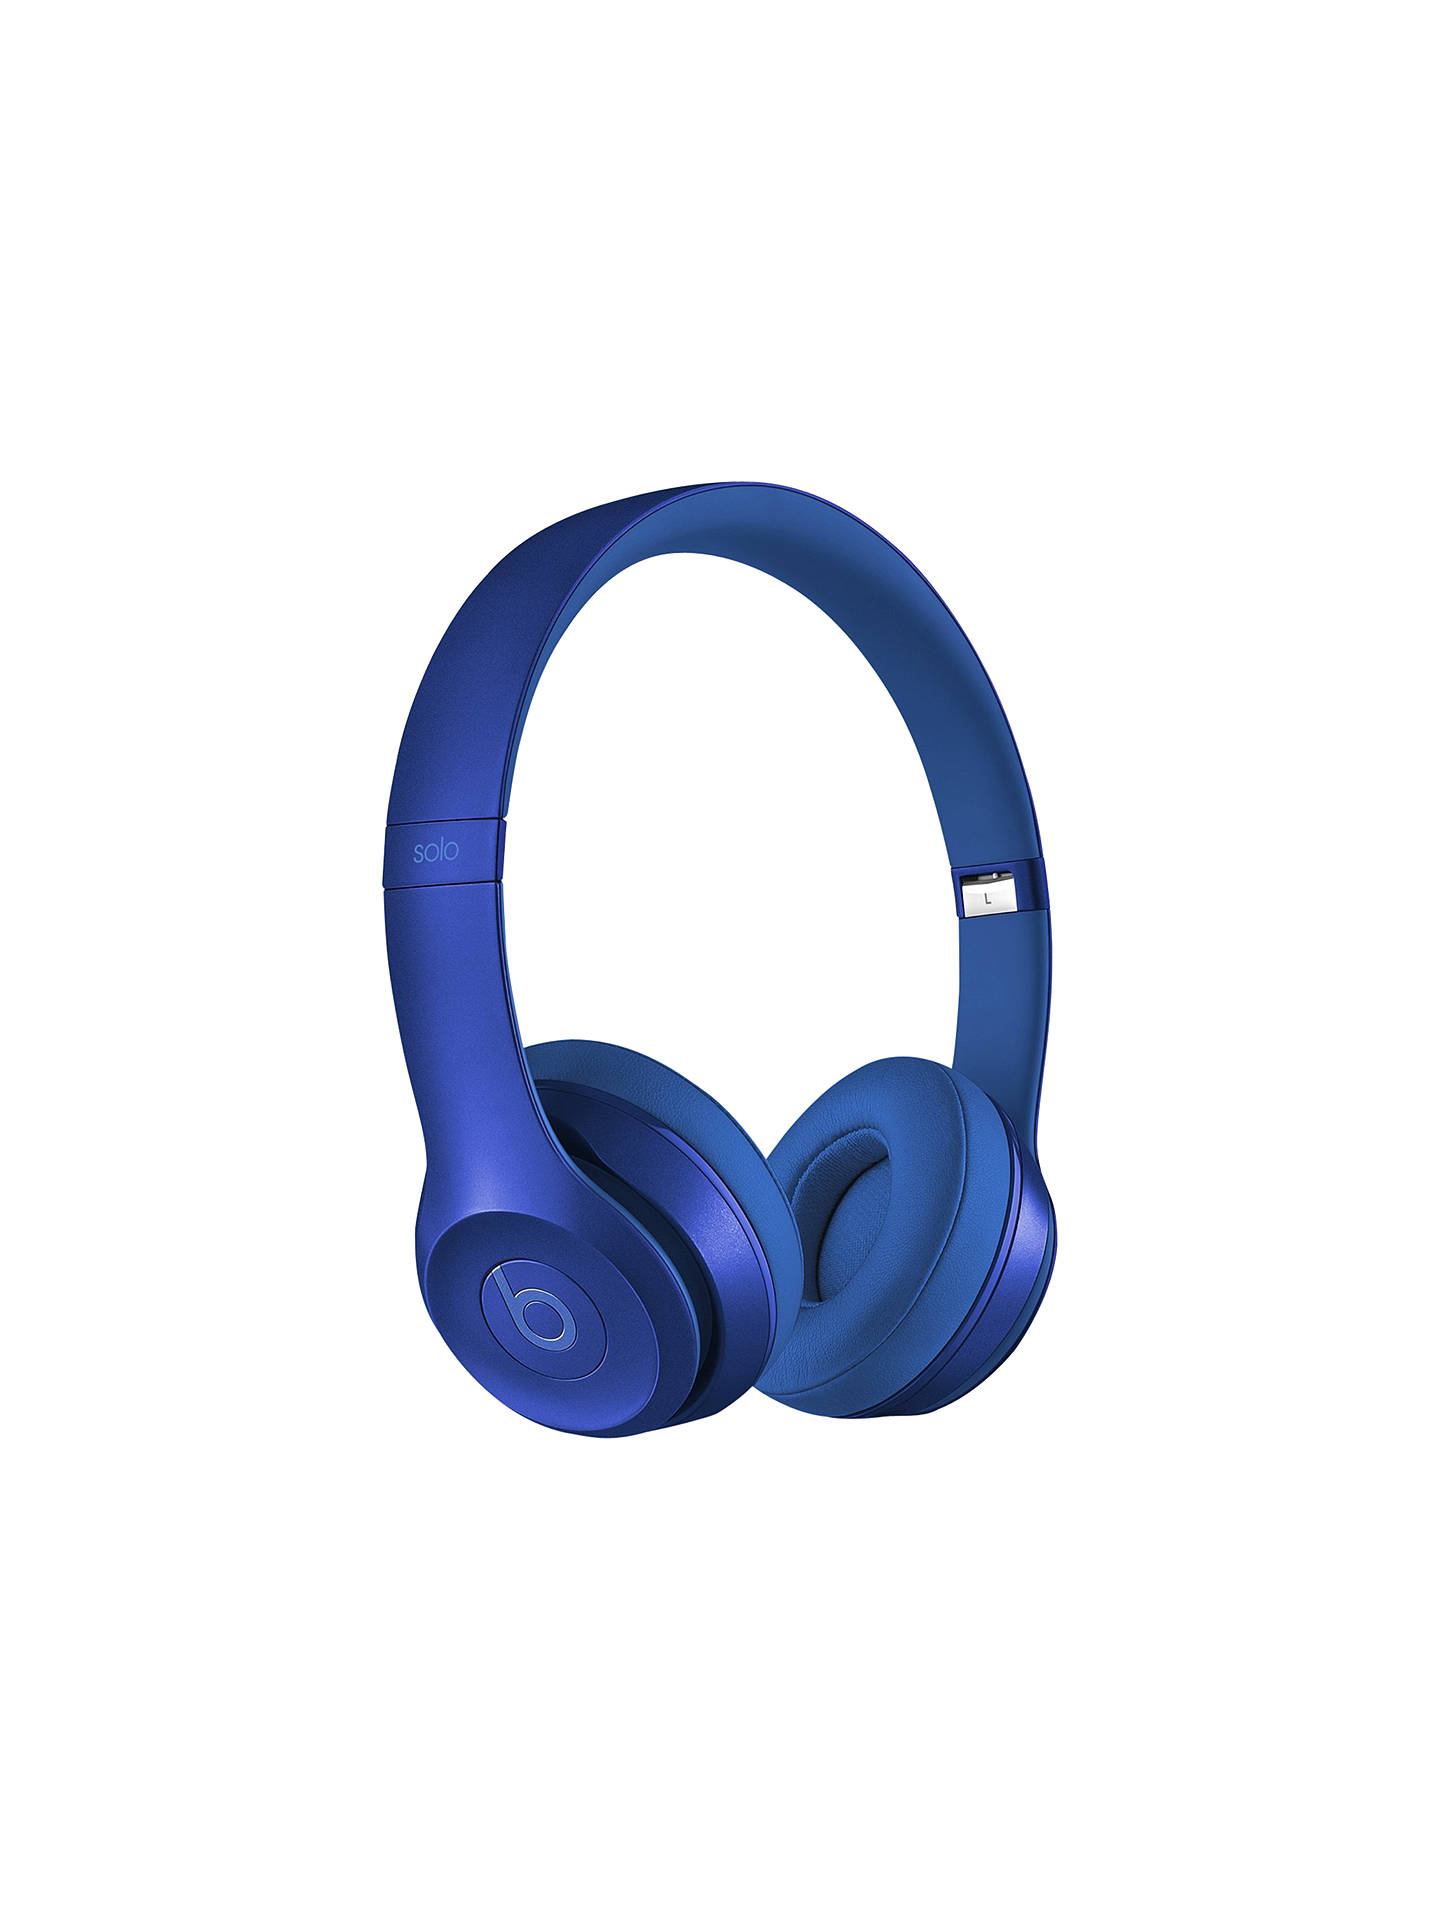 Buy Beats™ by Dr. Dre™ Solo™ 2 HD High Definition On-Ear Headphones with Mic/Remote, Royal Edition, Royal Blue Online at johnlewis.com